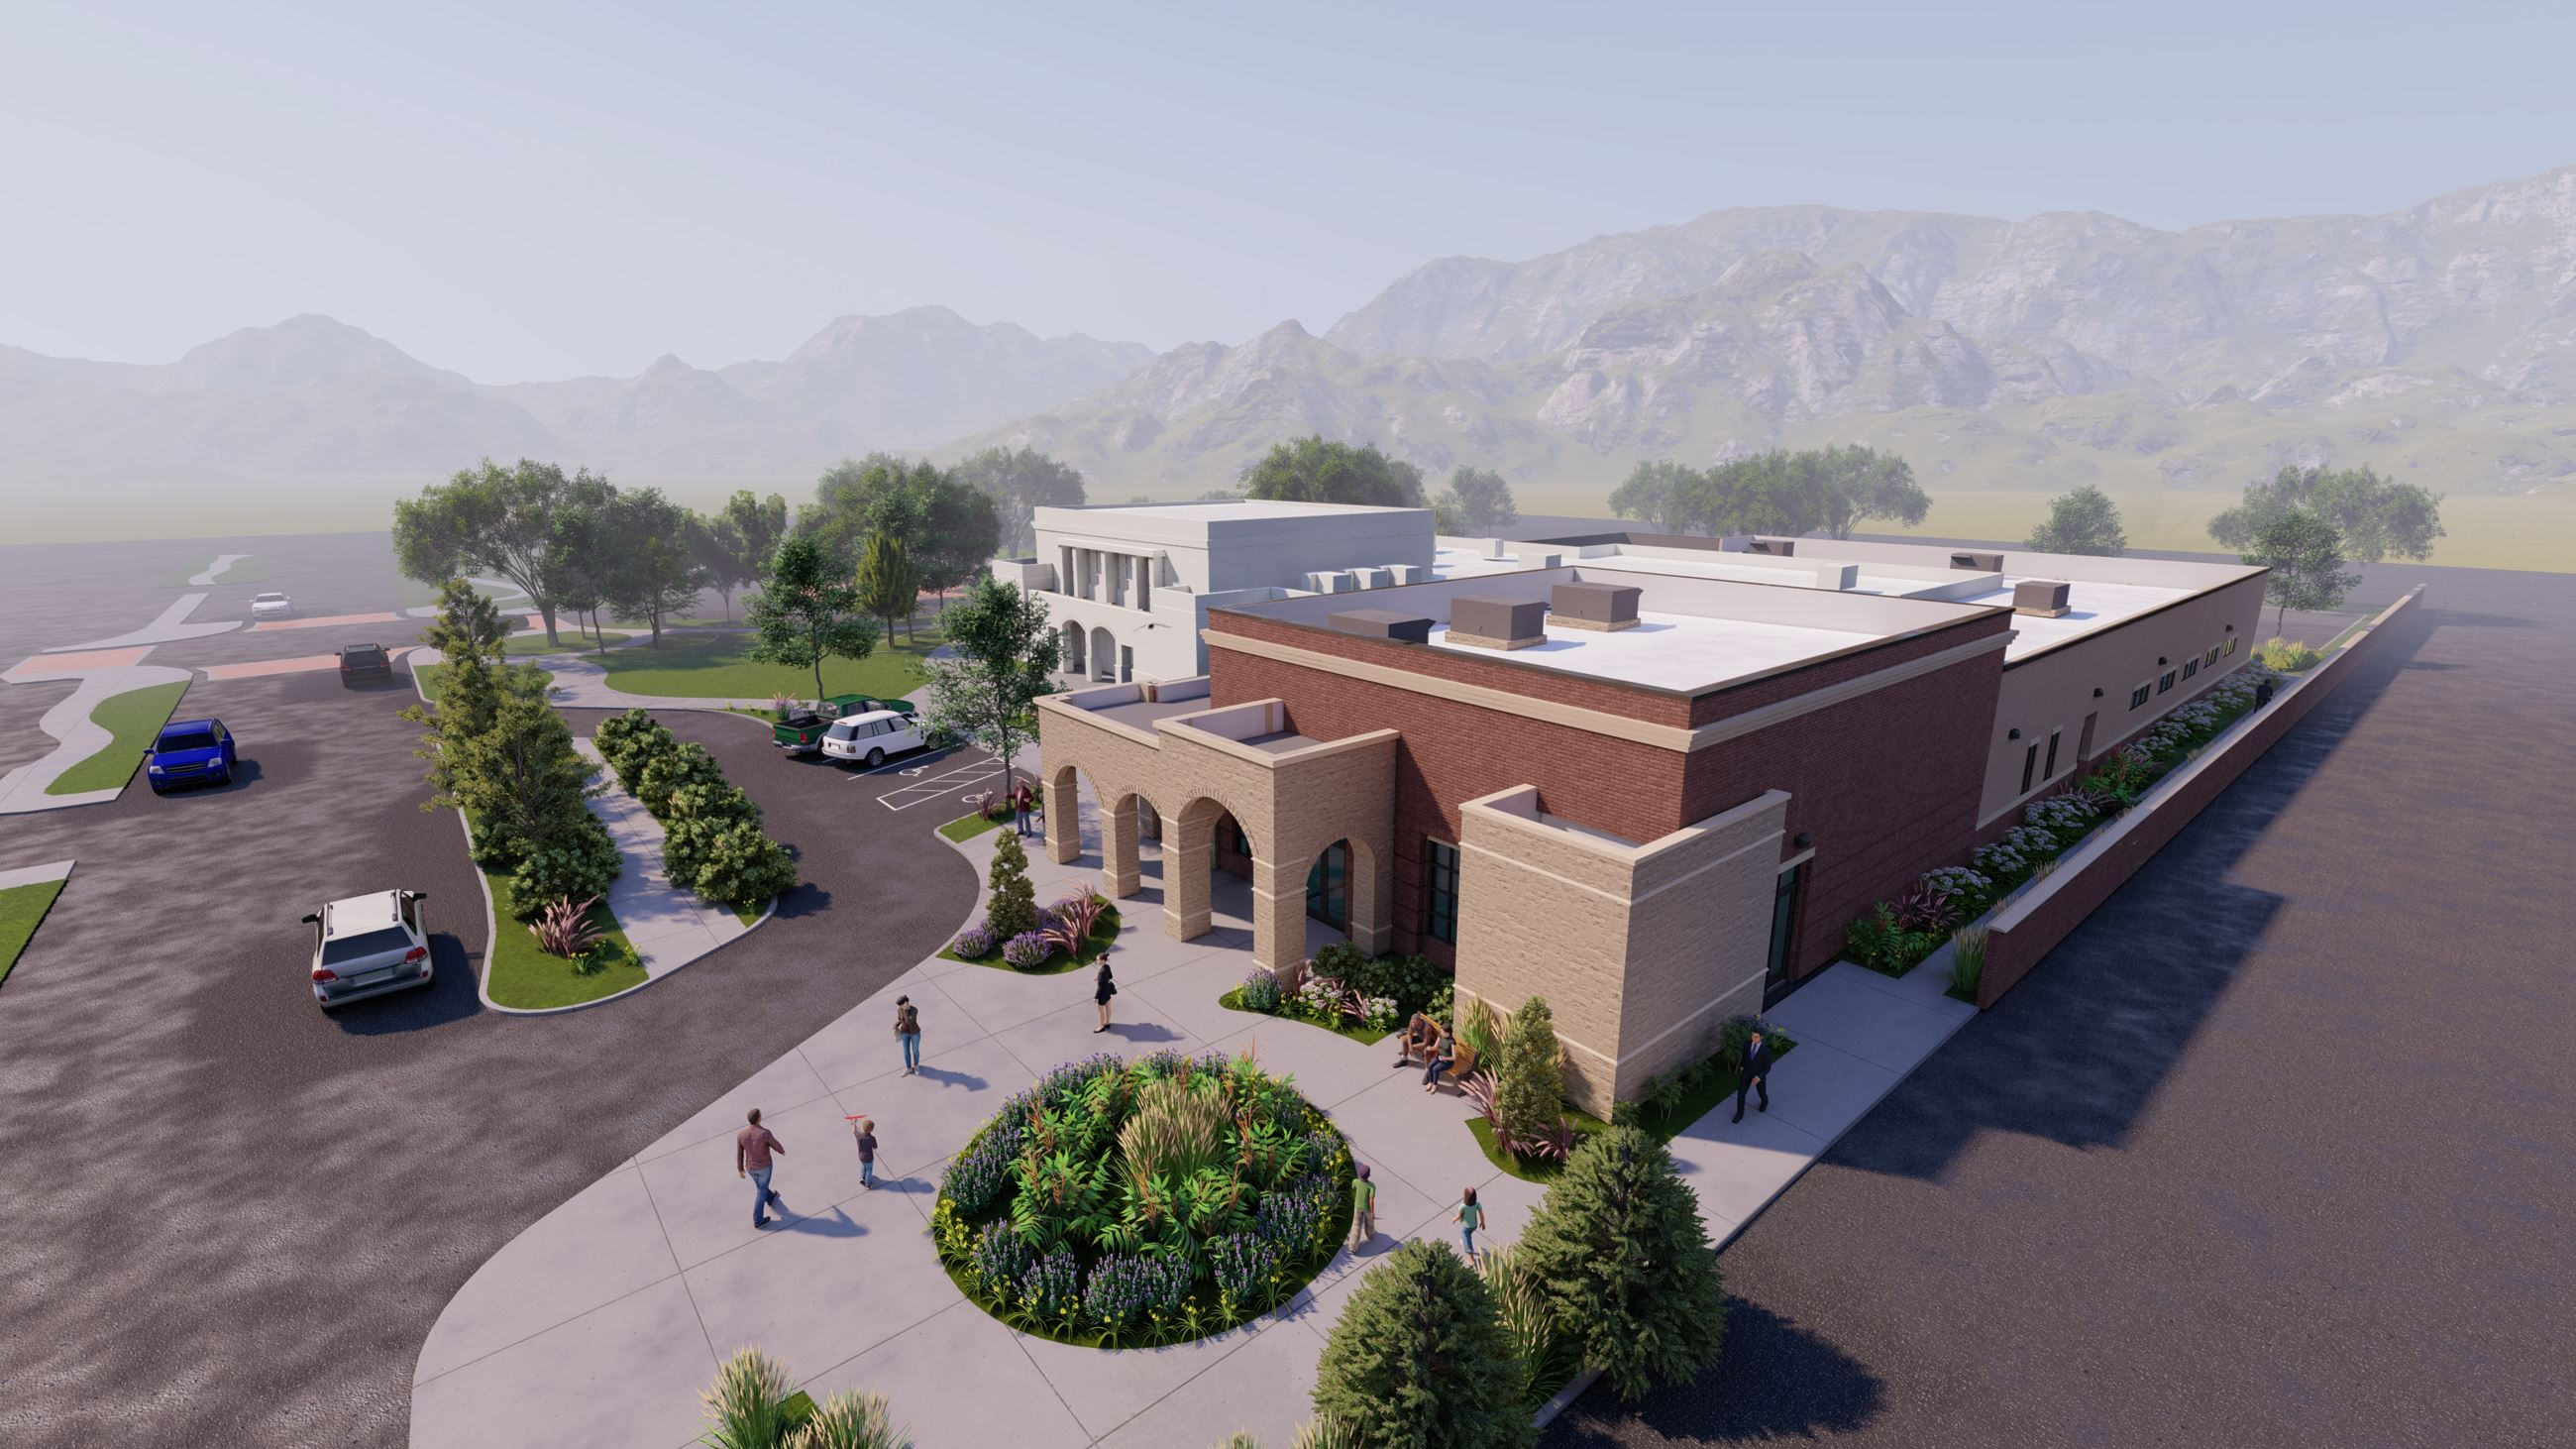 A design rendering of the future community center entrance at city hall. It is red and tan brick.